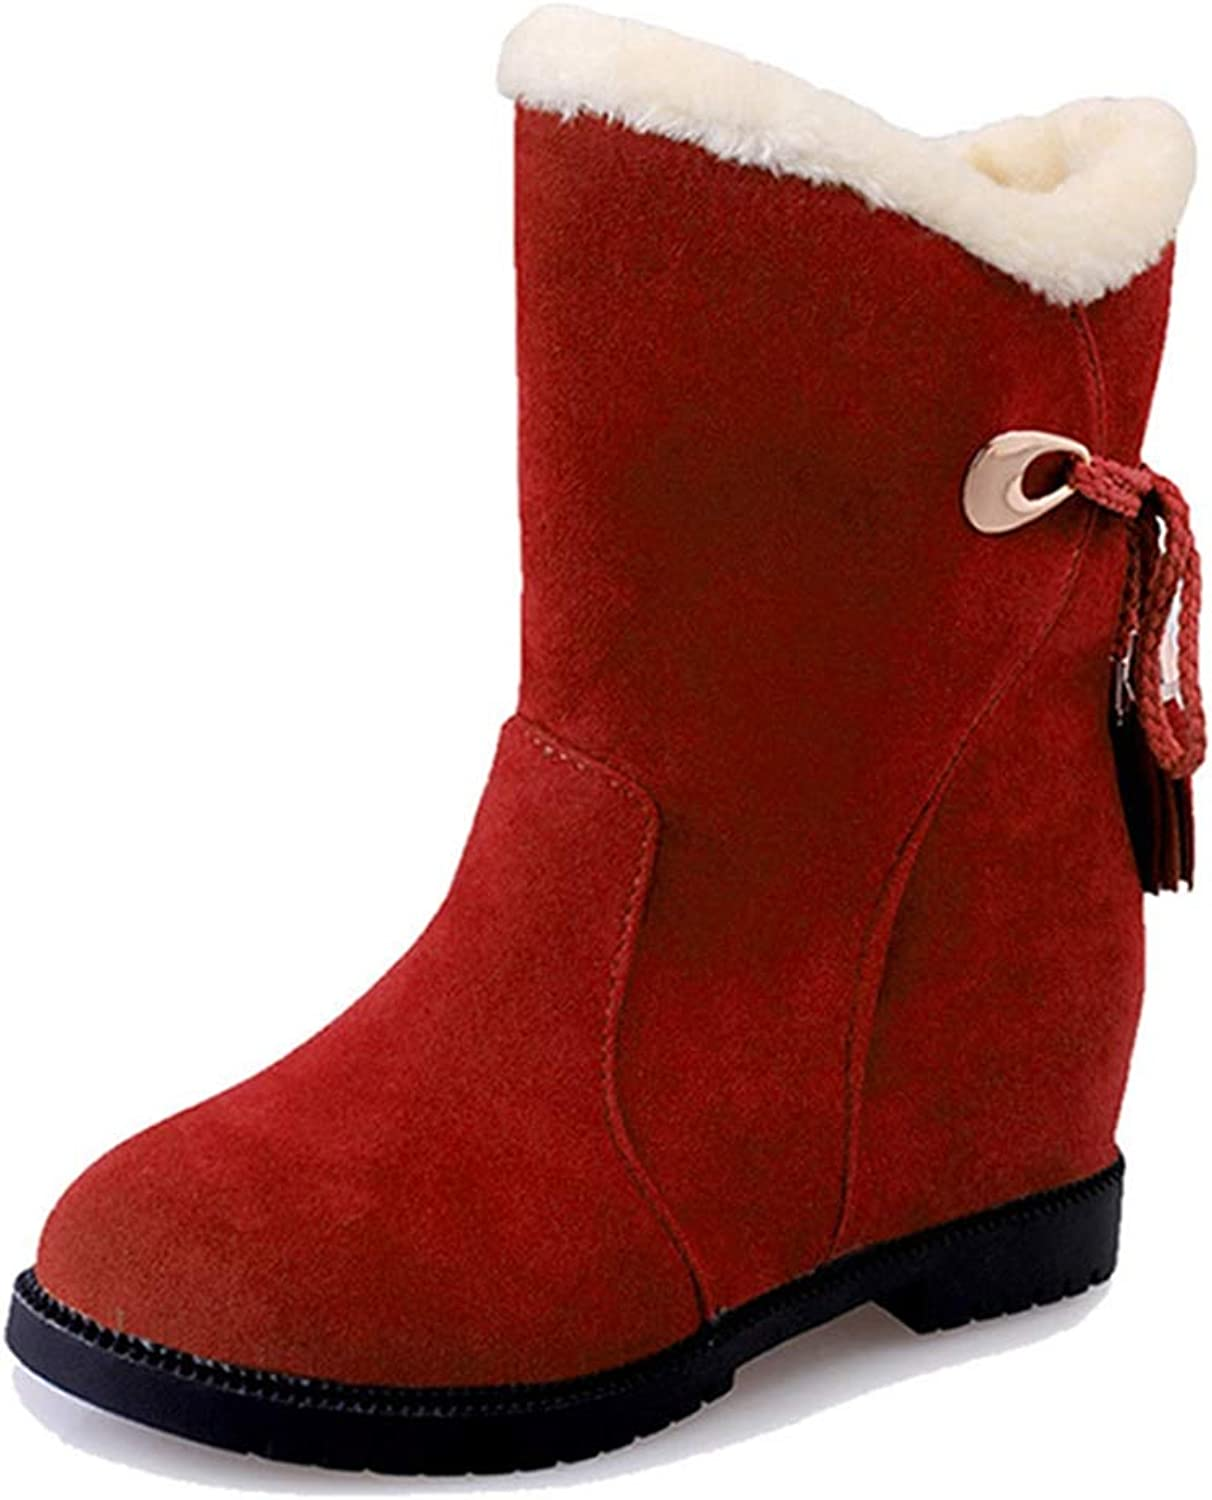 Fay Waters Women's Warm Fringe Fur Short Boots Plush Suede Platform Slip On Round Toe Snow Booties